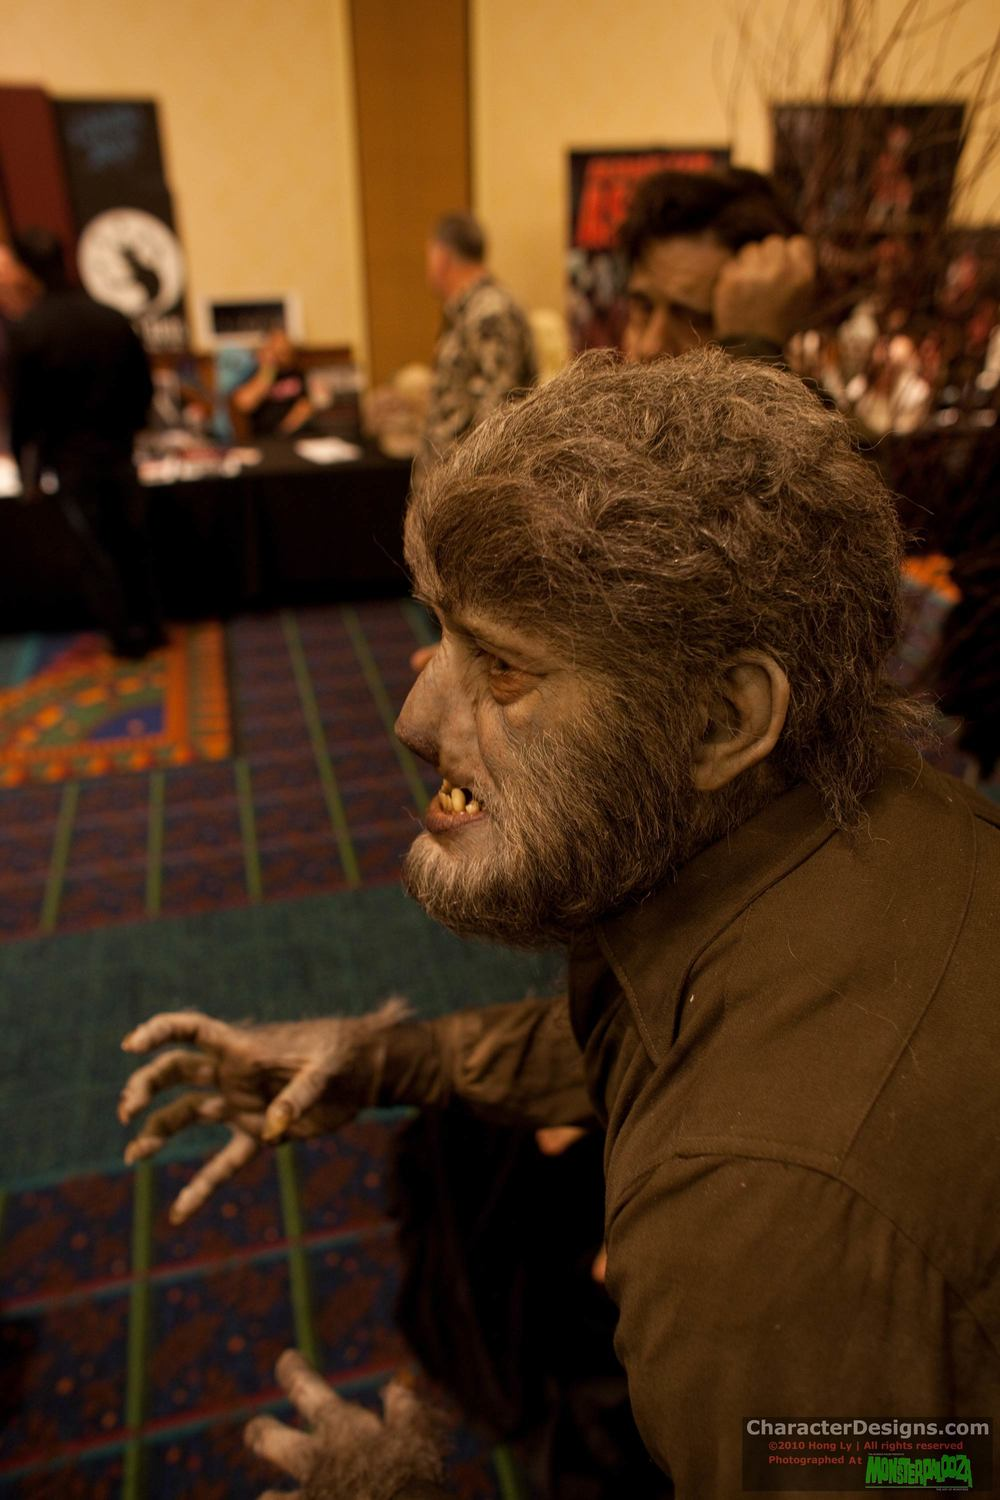 2010_Monsterpalooza_670.jpg